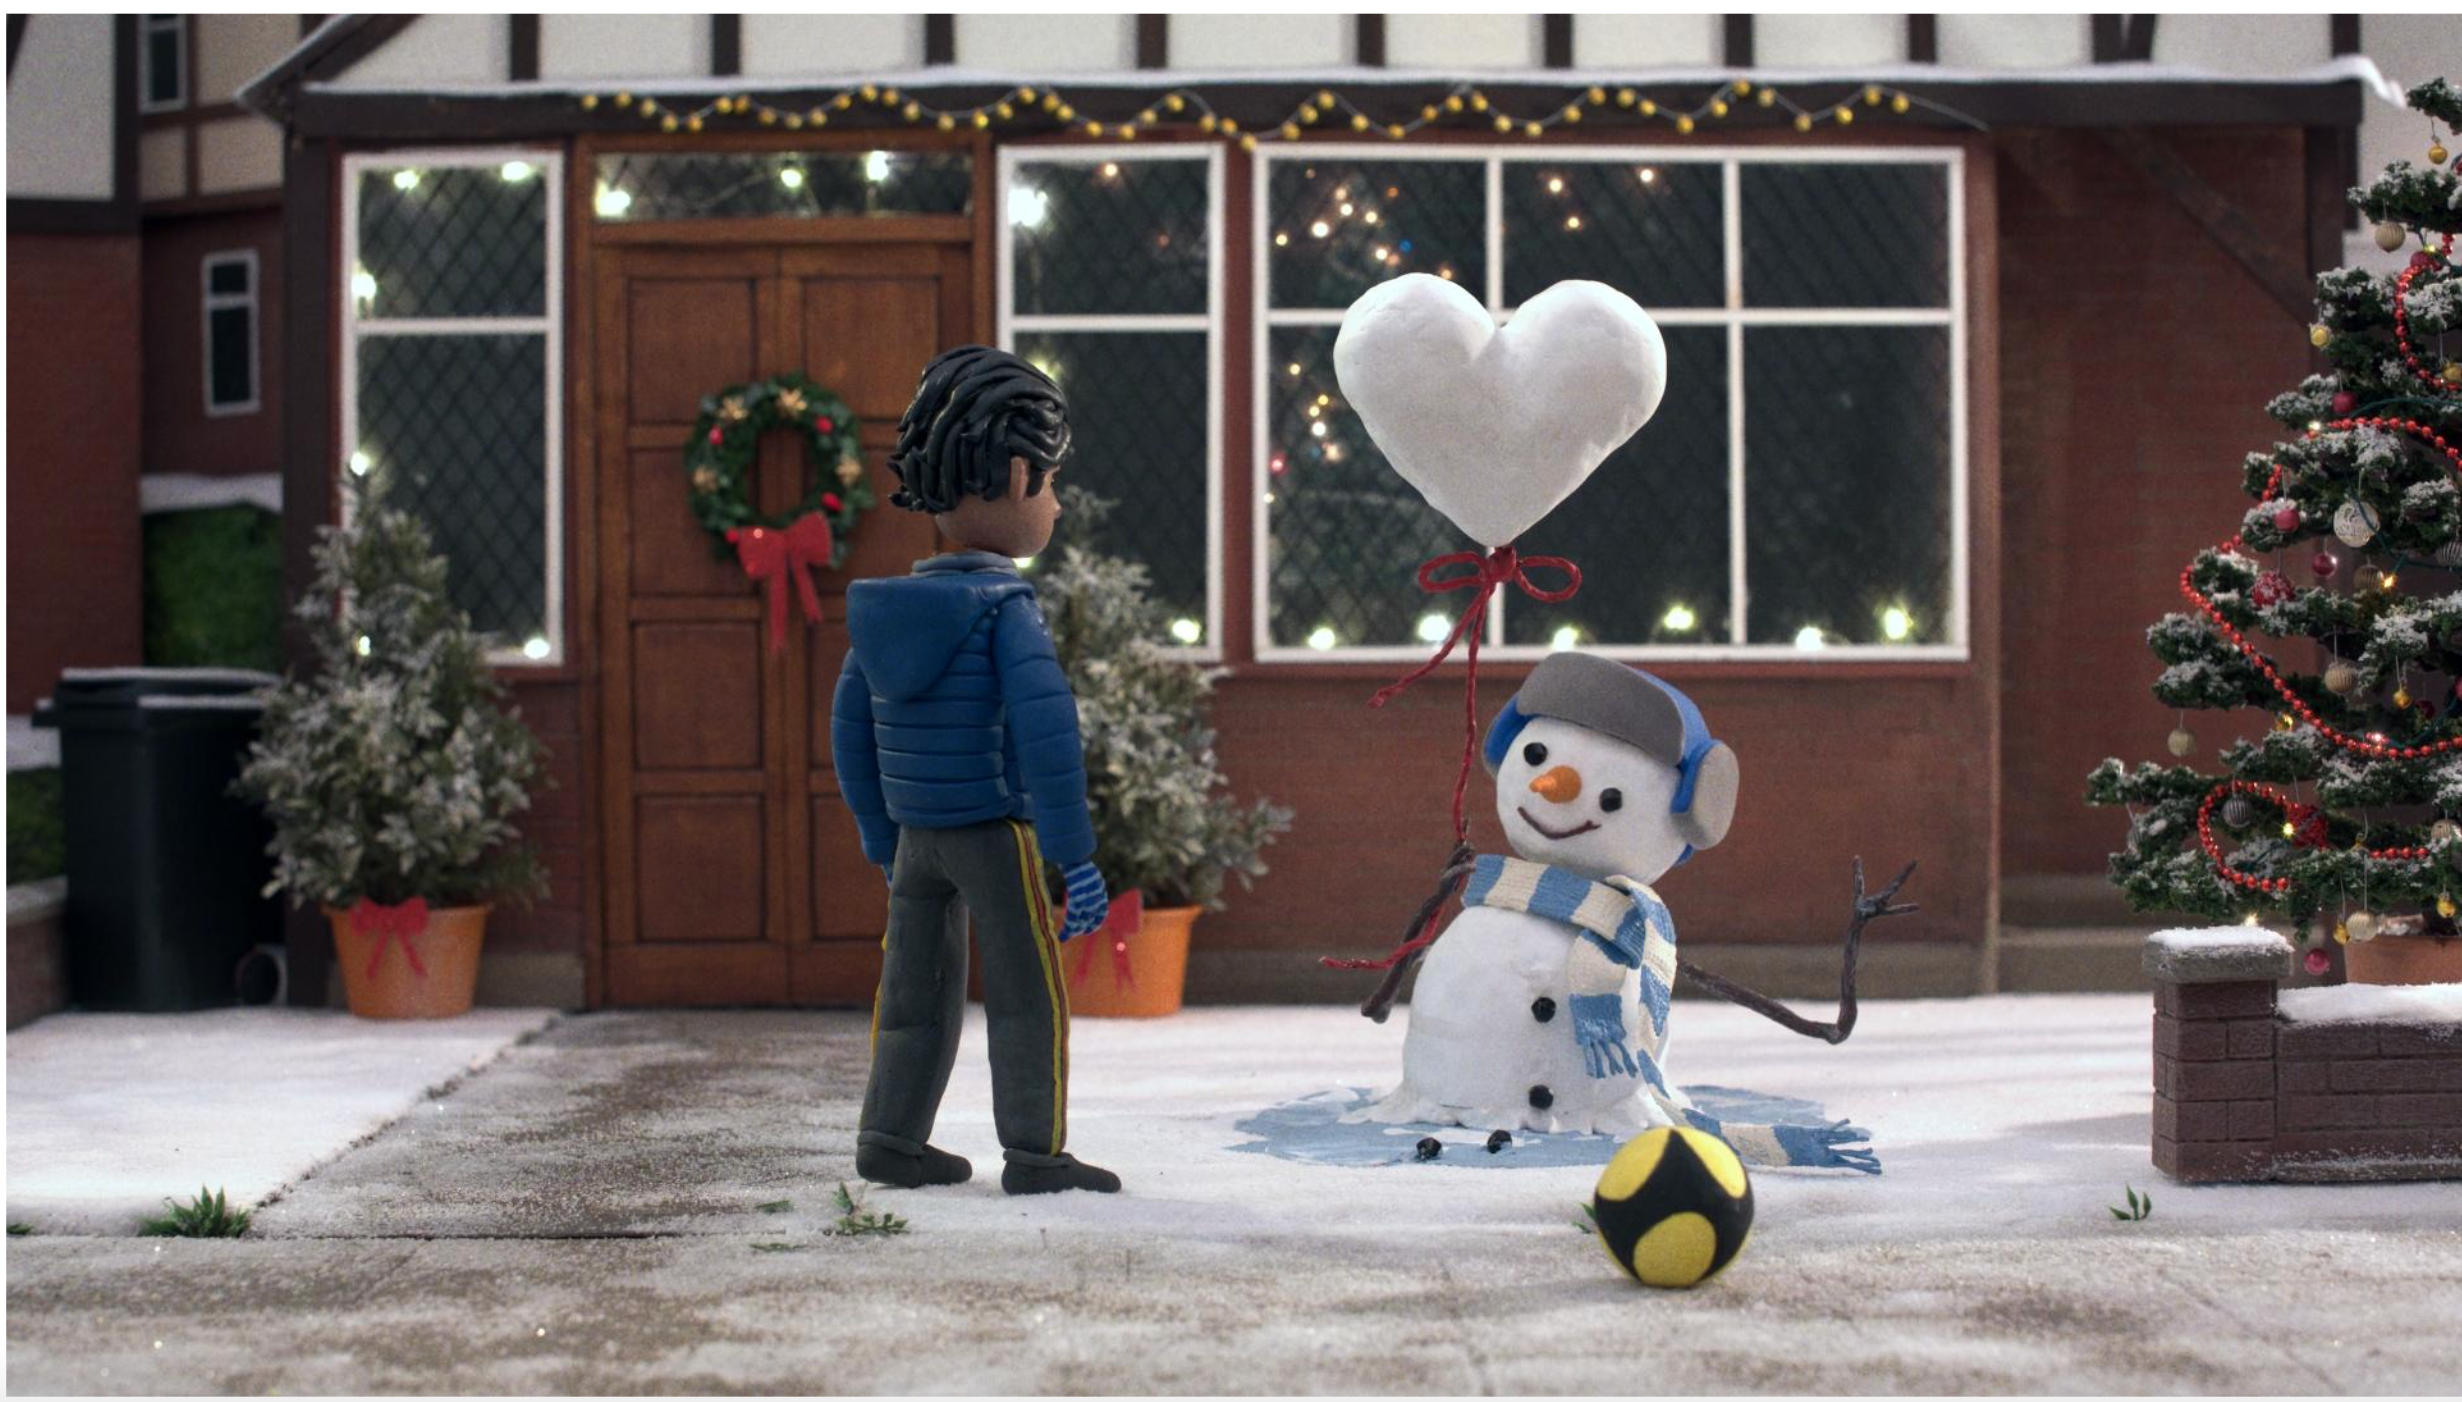 Above: A still from the multi-faceted John Lewis Christmas advert, which championed kindness as well as showcasing animation talents.